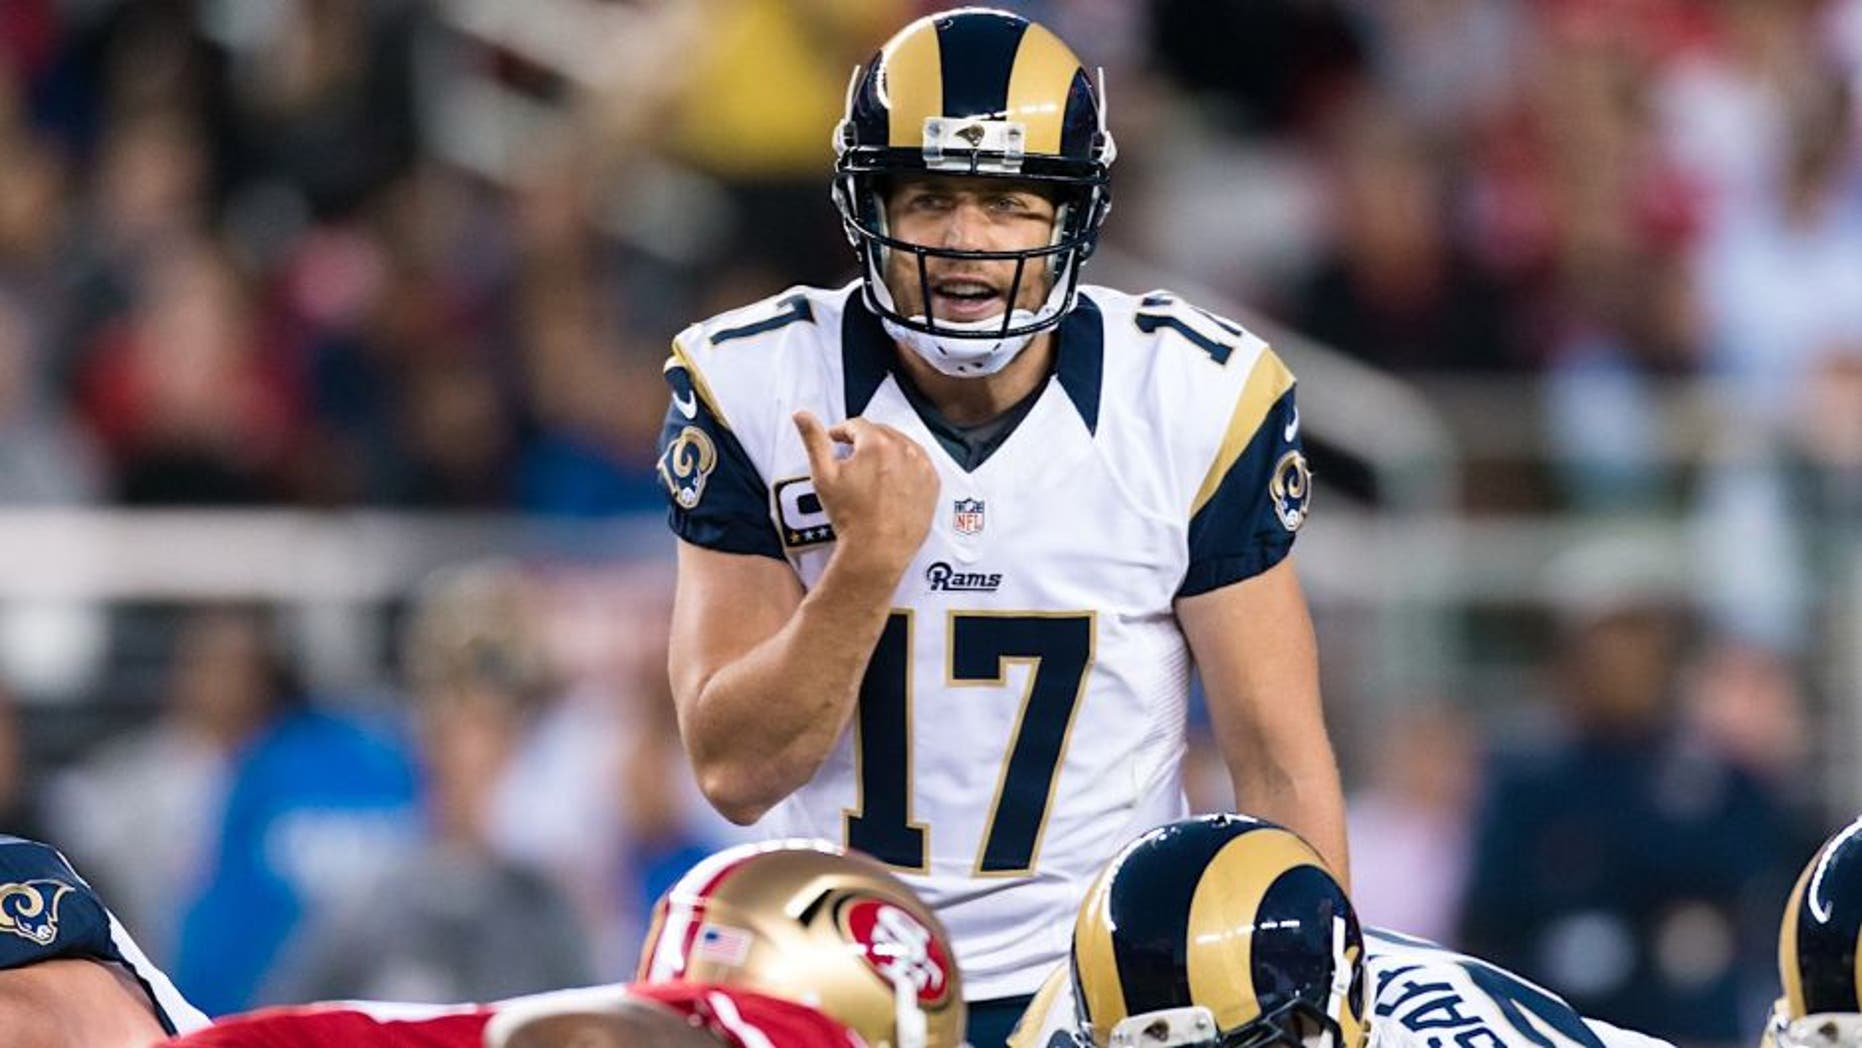 Sep 12, 2016; Santa Clara, CA, USA; Los Angeles Rams quarterback Case Keenum (17) calls the play against the San Francisco 49ers in the first quarter at Levi's Stadium. Mandatory Credit: John Hefti-USA TODAY Sports